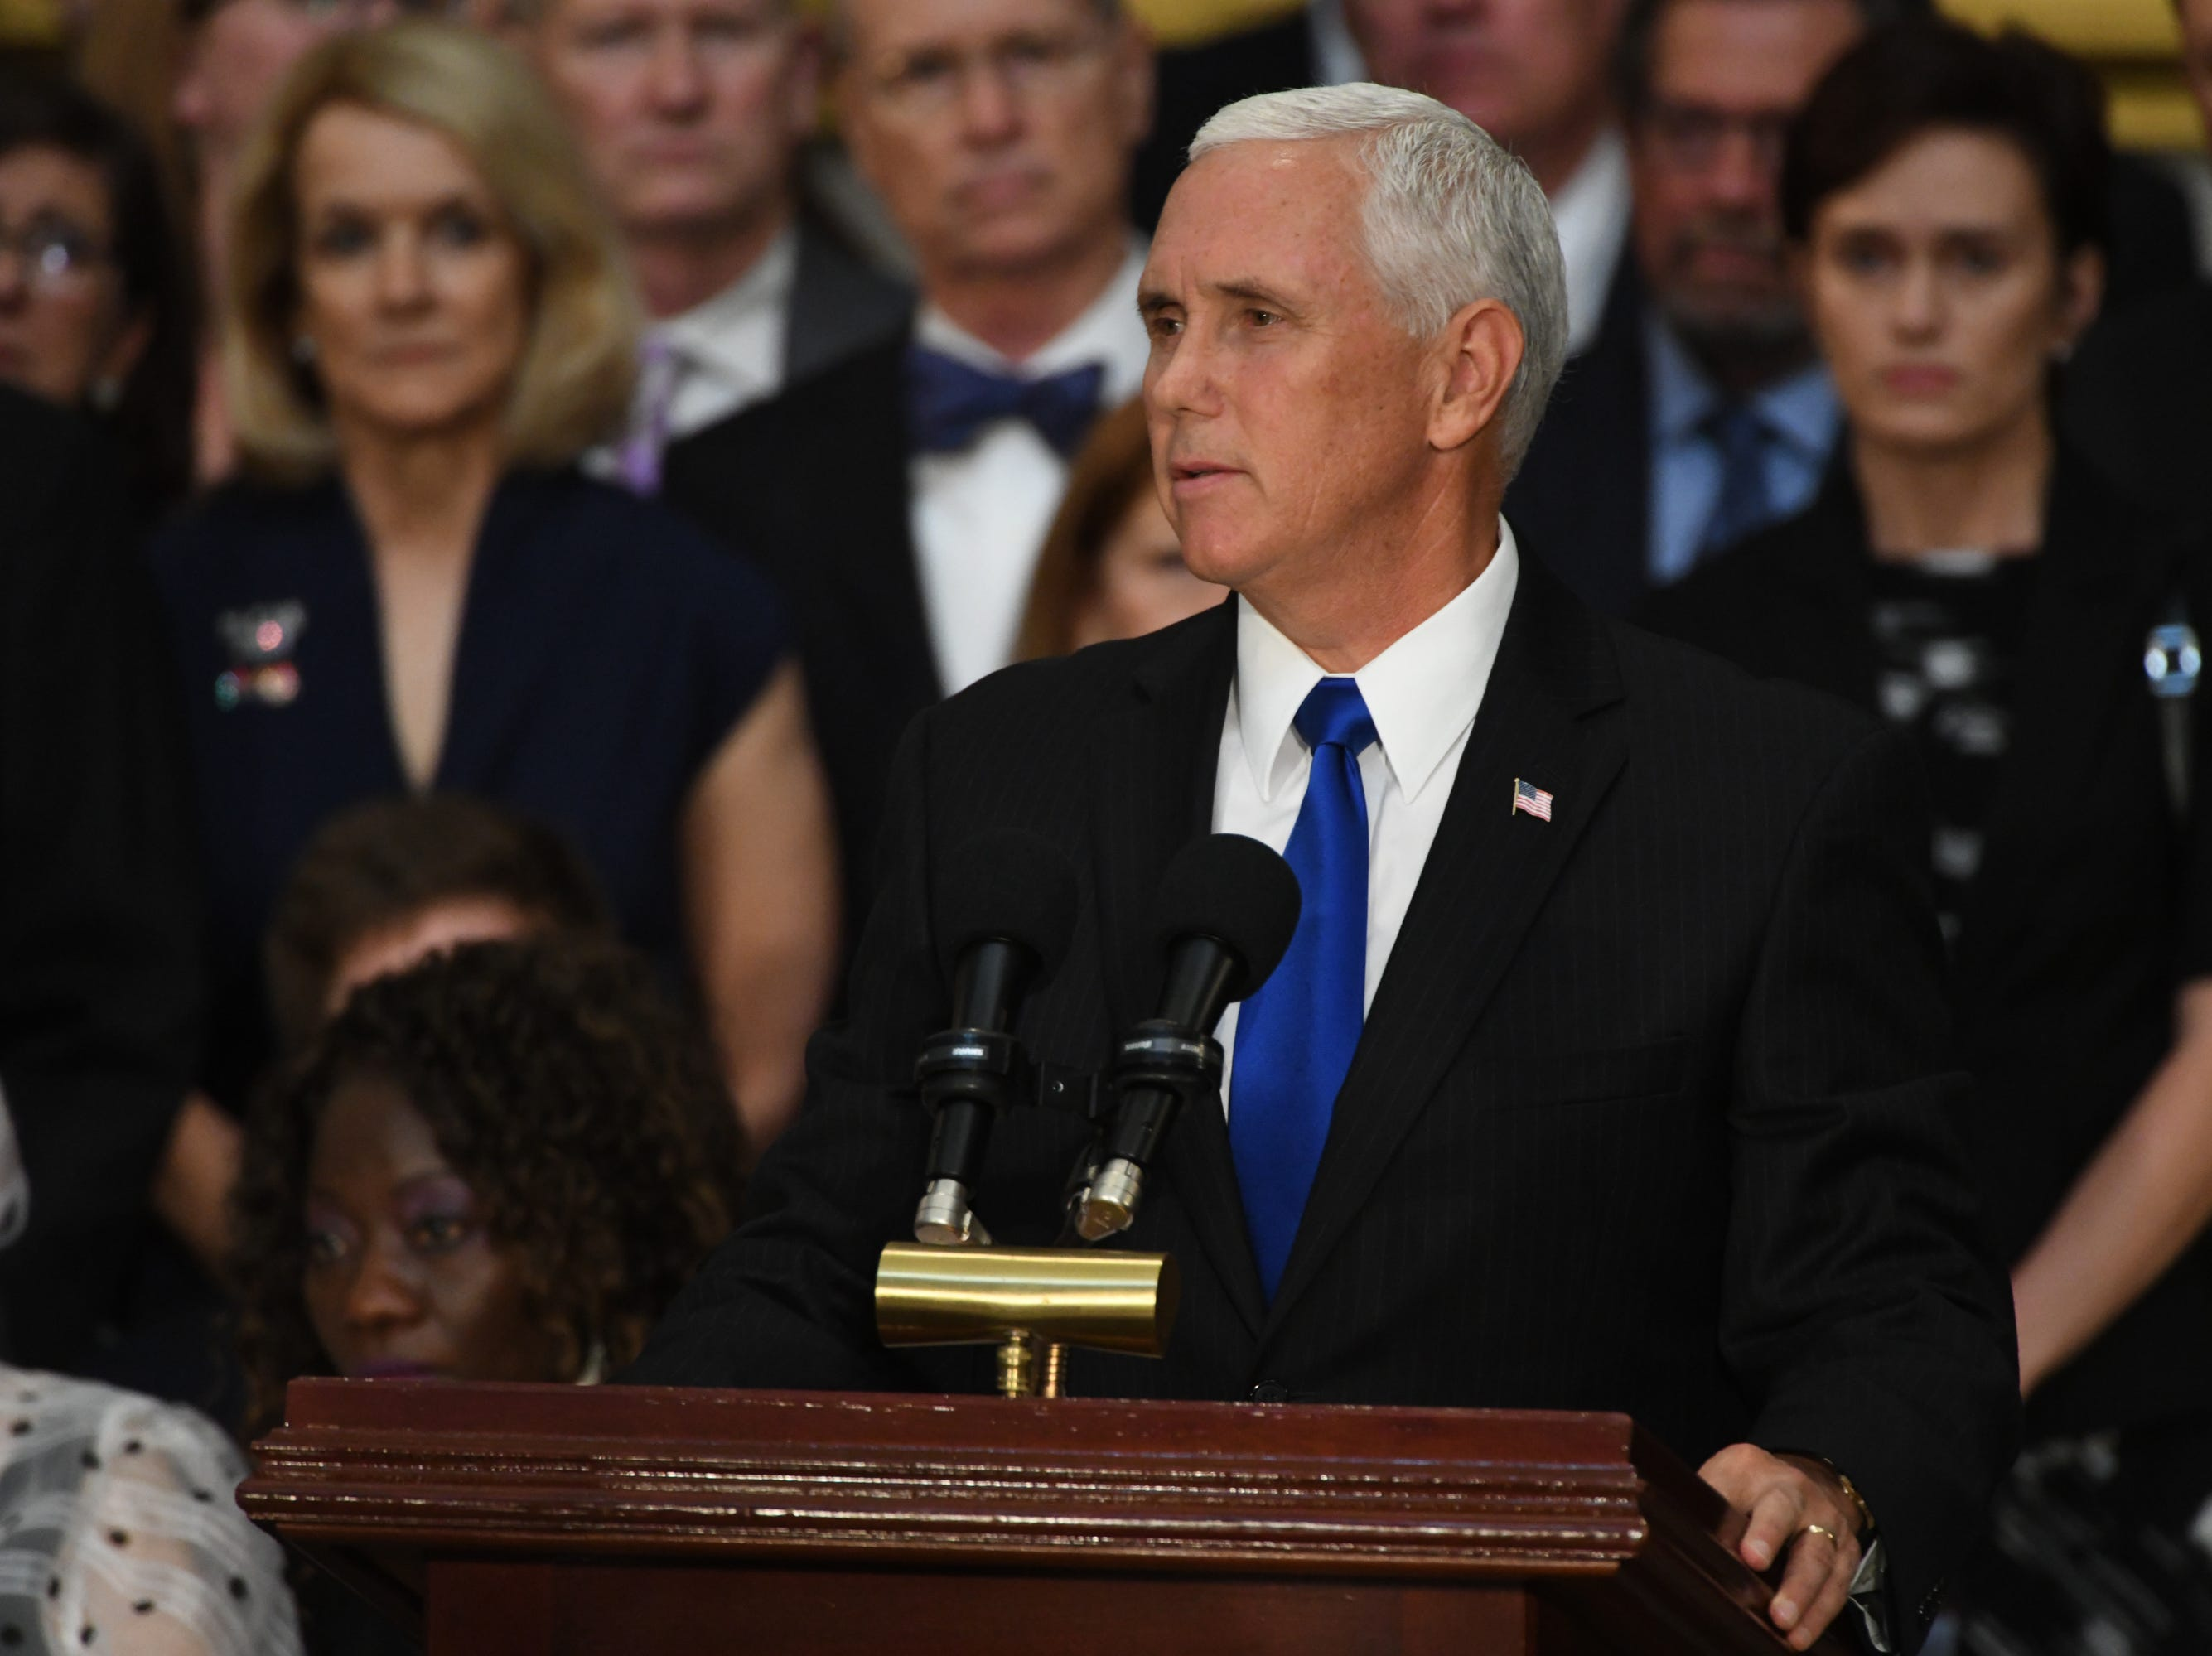 Vice President Mike Pence speaks at a memorial for Sen. John McCain at the U.S. Capitol in Washington on Aug. 31, 2018 in Washington.